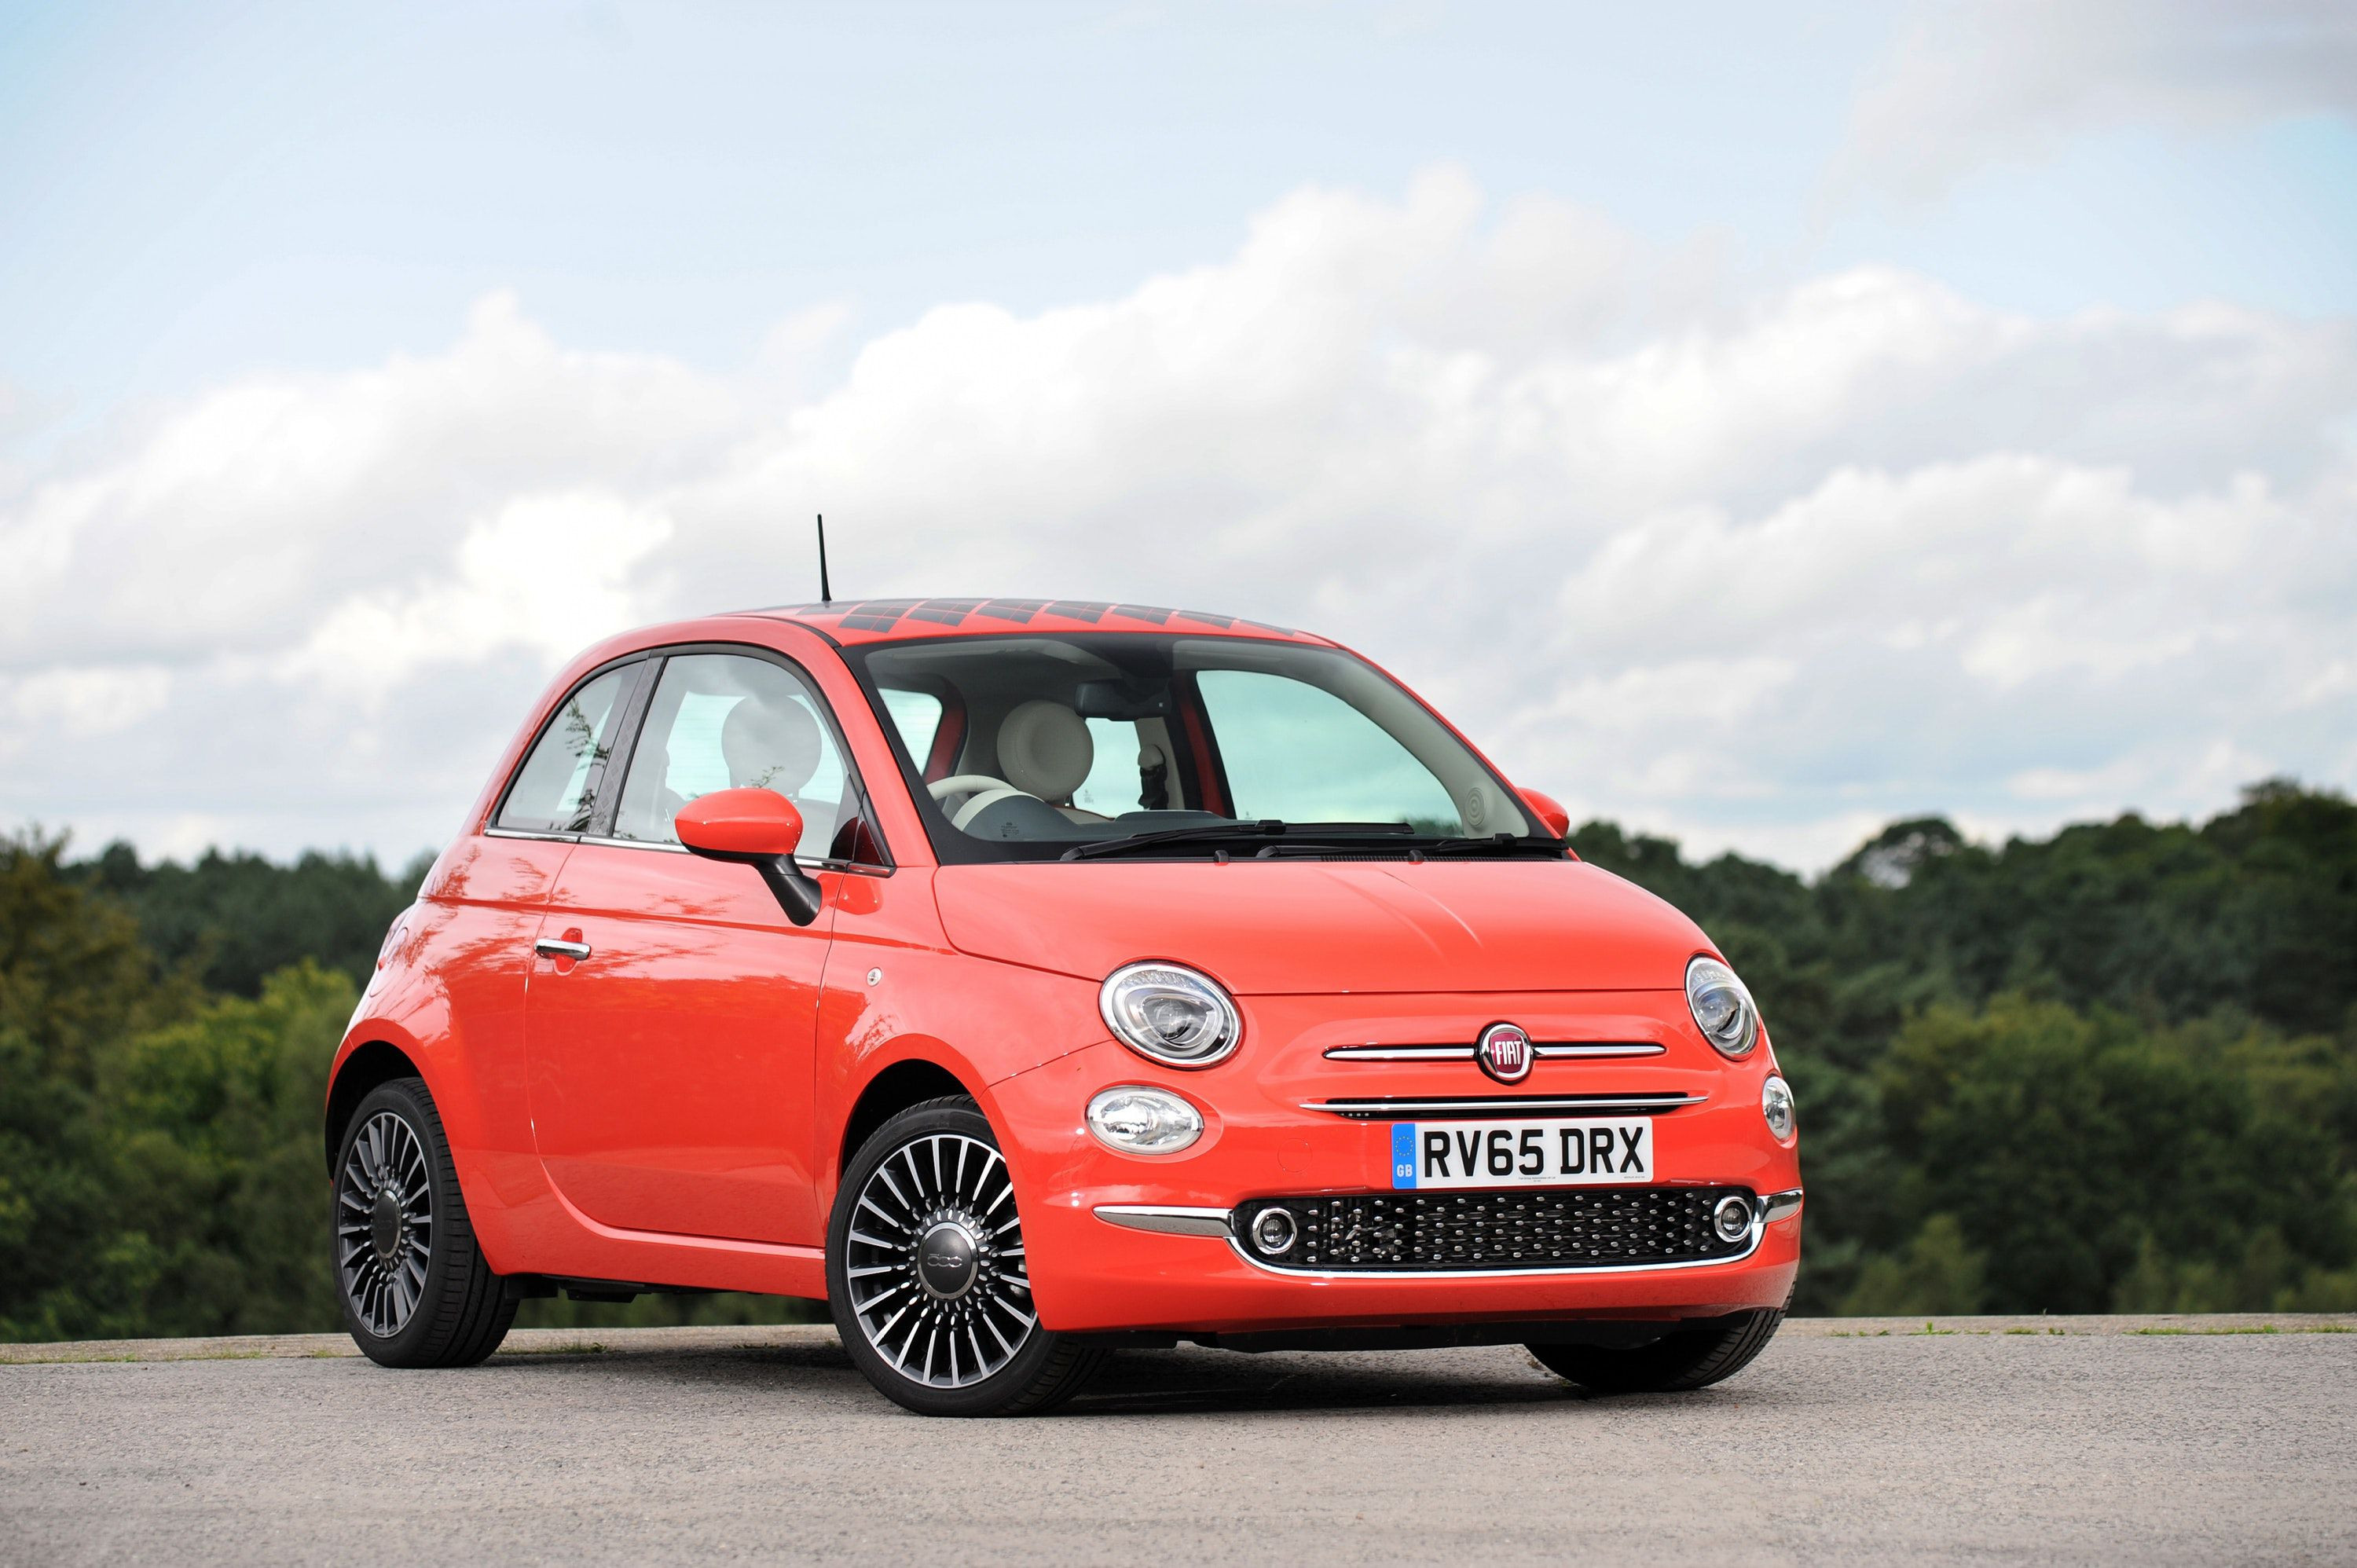 Fiat 500 in red